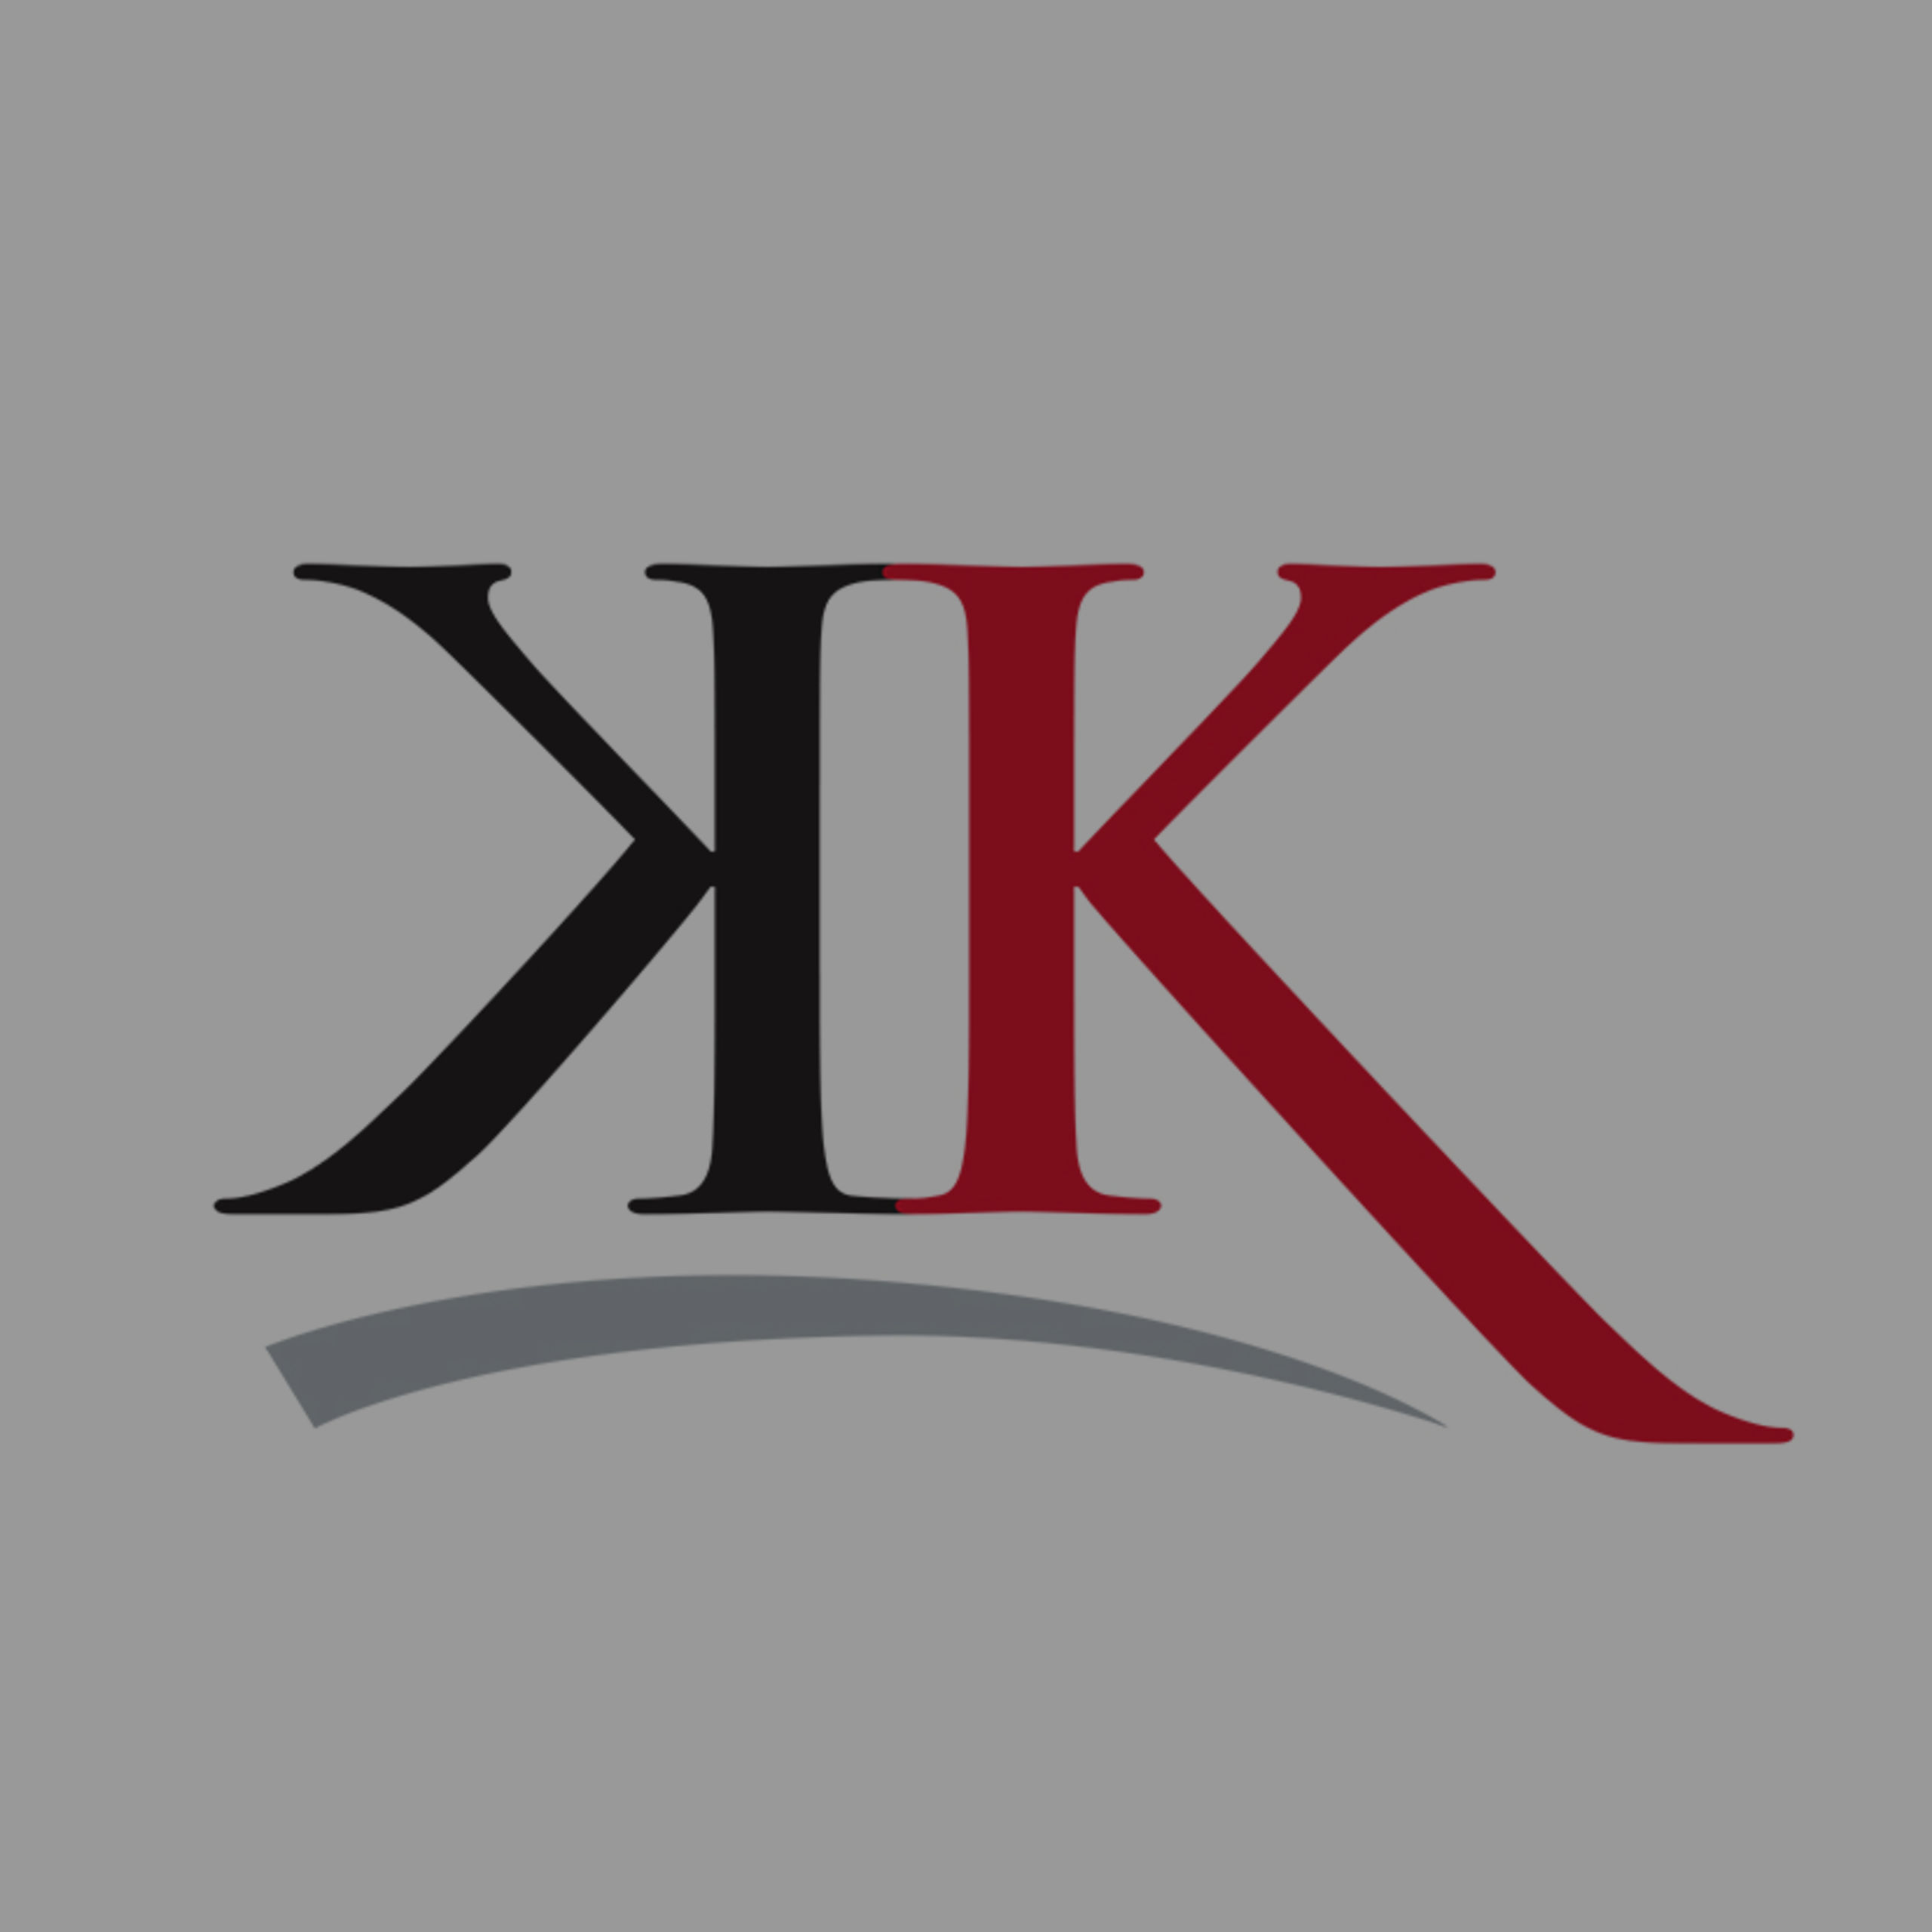 We're officially KKeegan Realty